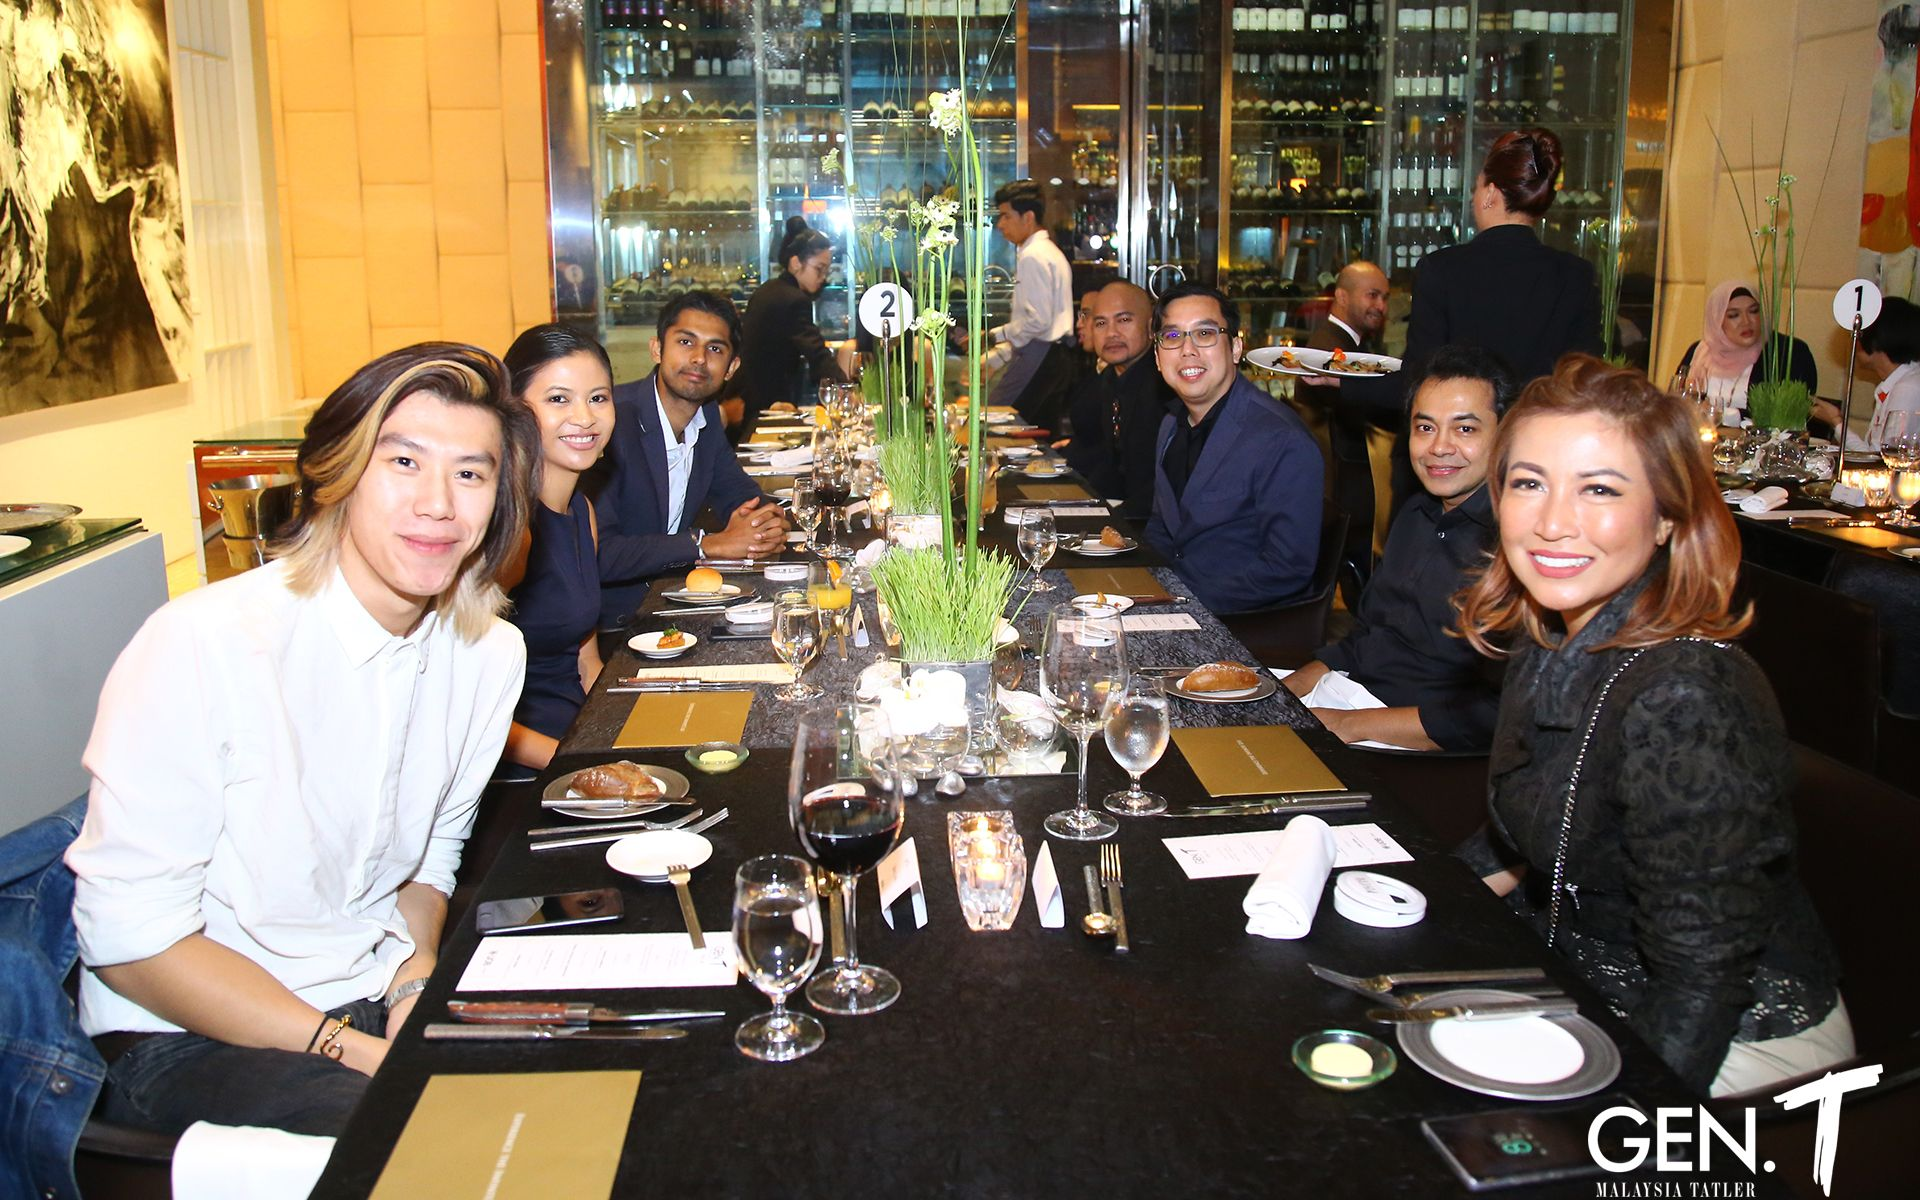 Brian Chan and Puan Sri Tiara Jacquelina, together with their dinner companions